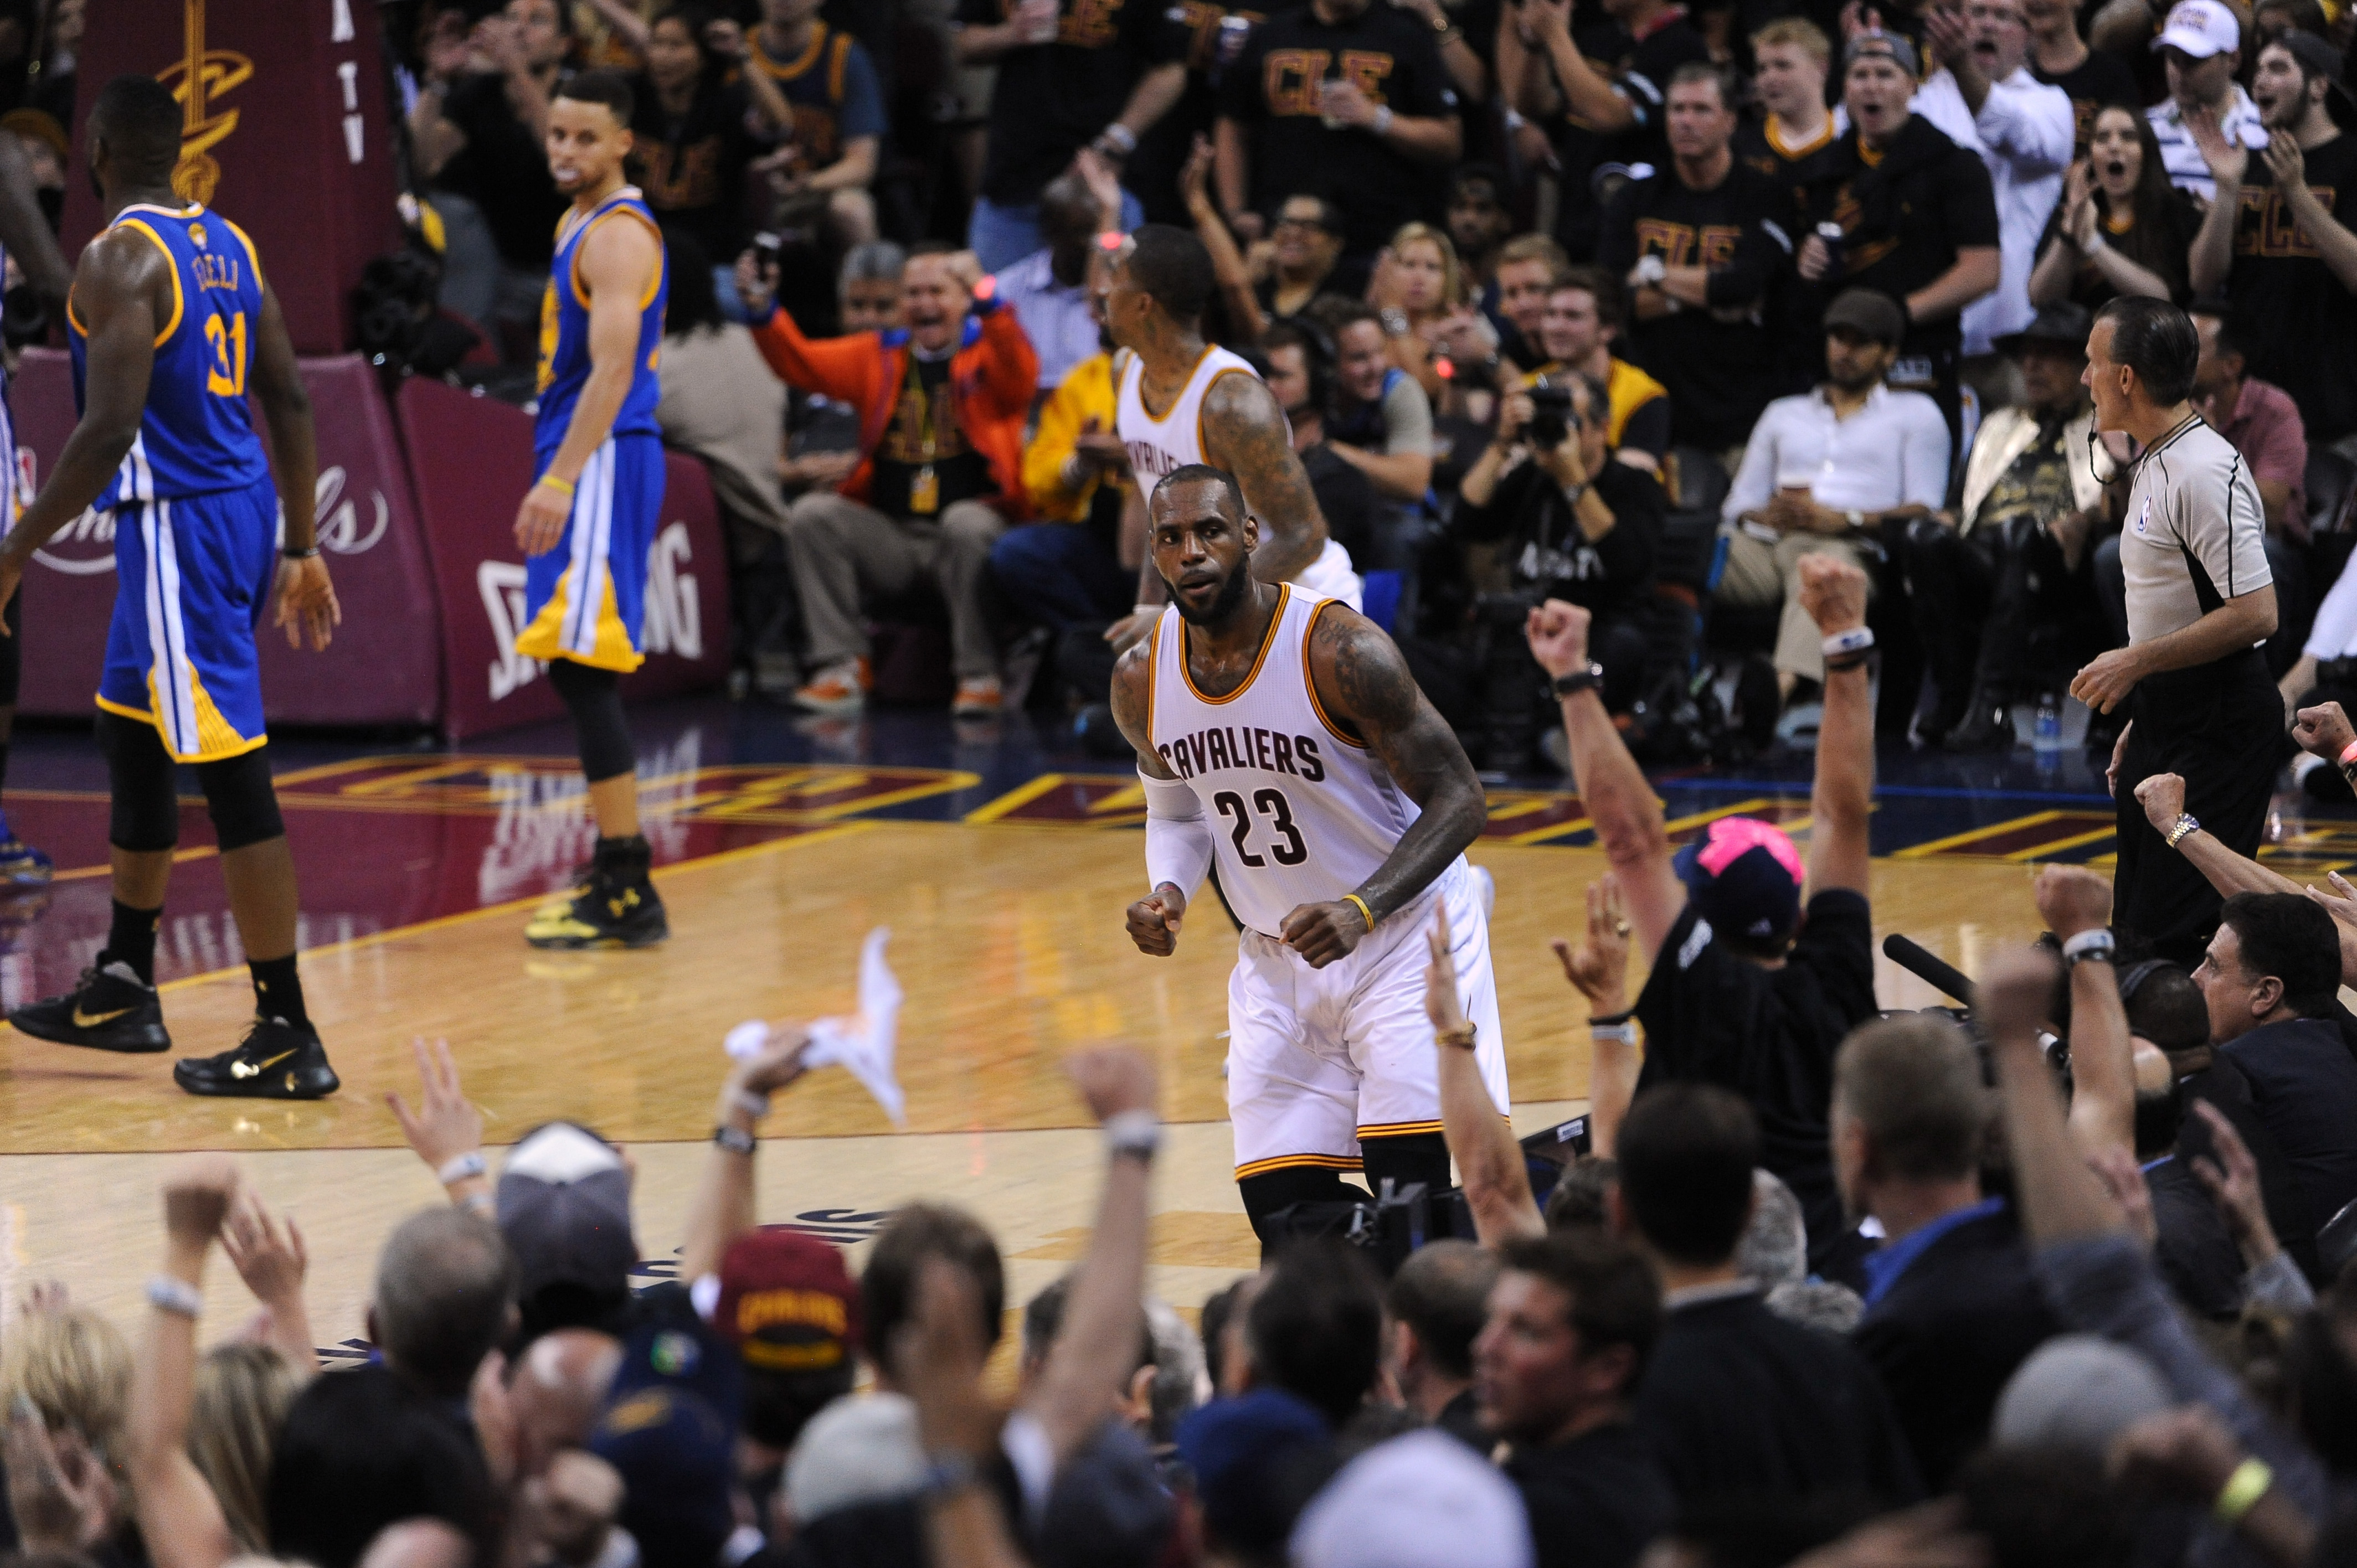 cd95955d93b JUNE 19 -LeBron James of the Cleveland Cavaliers celebrates after making a  shot during his team s game against the Golden State Warriors at Quicken  Loans ...